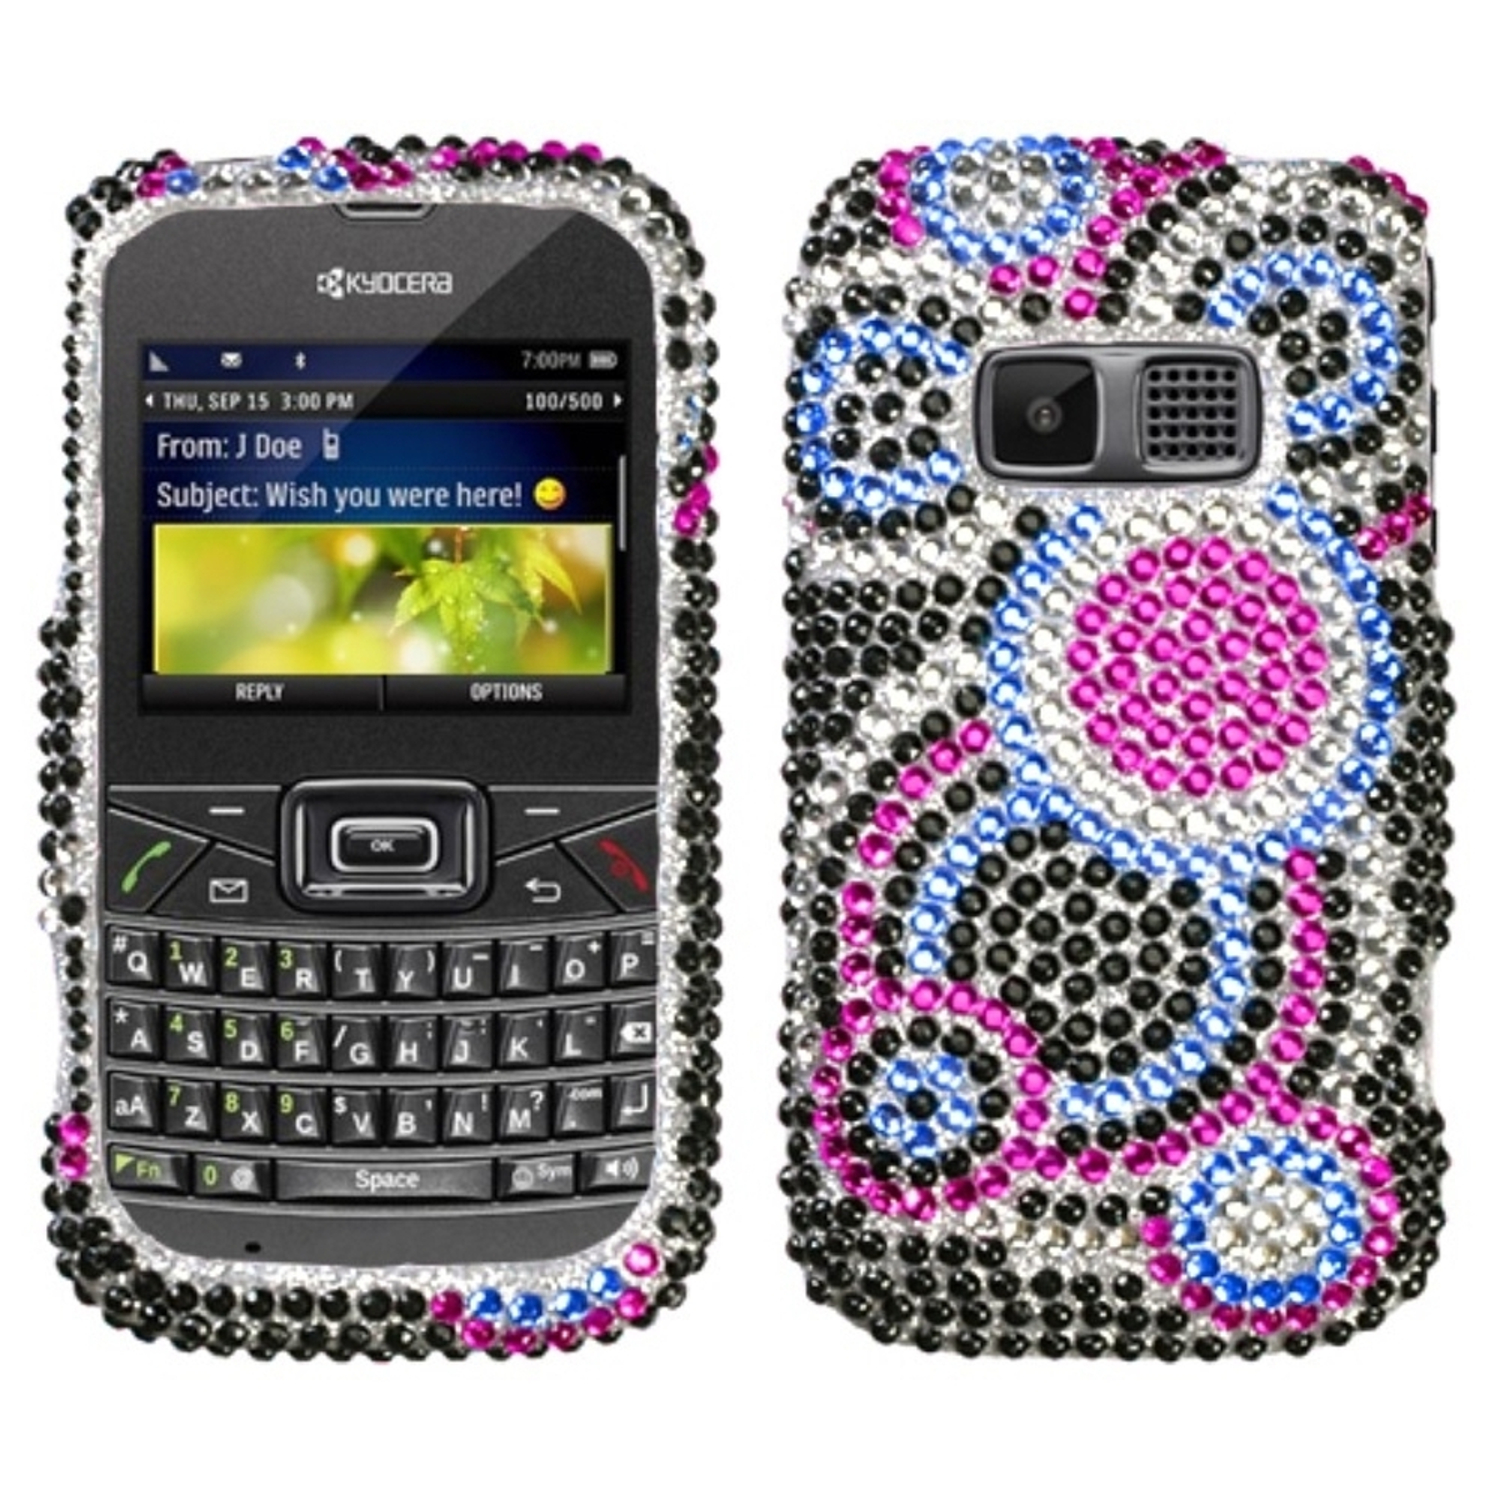 Insten Bubble Diamante Case Cover For KYOCERA S3015 Brio